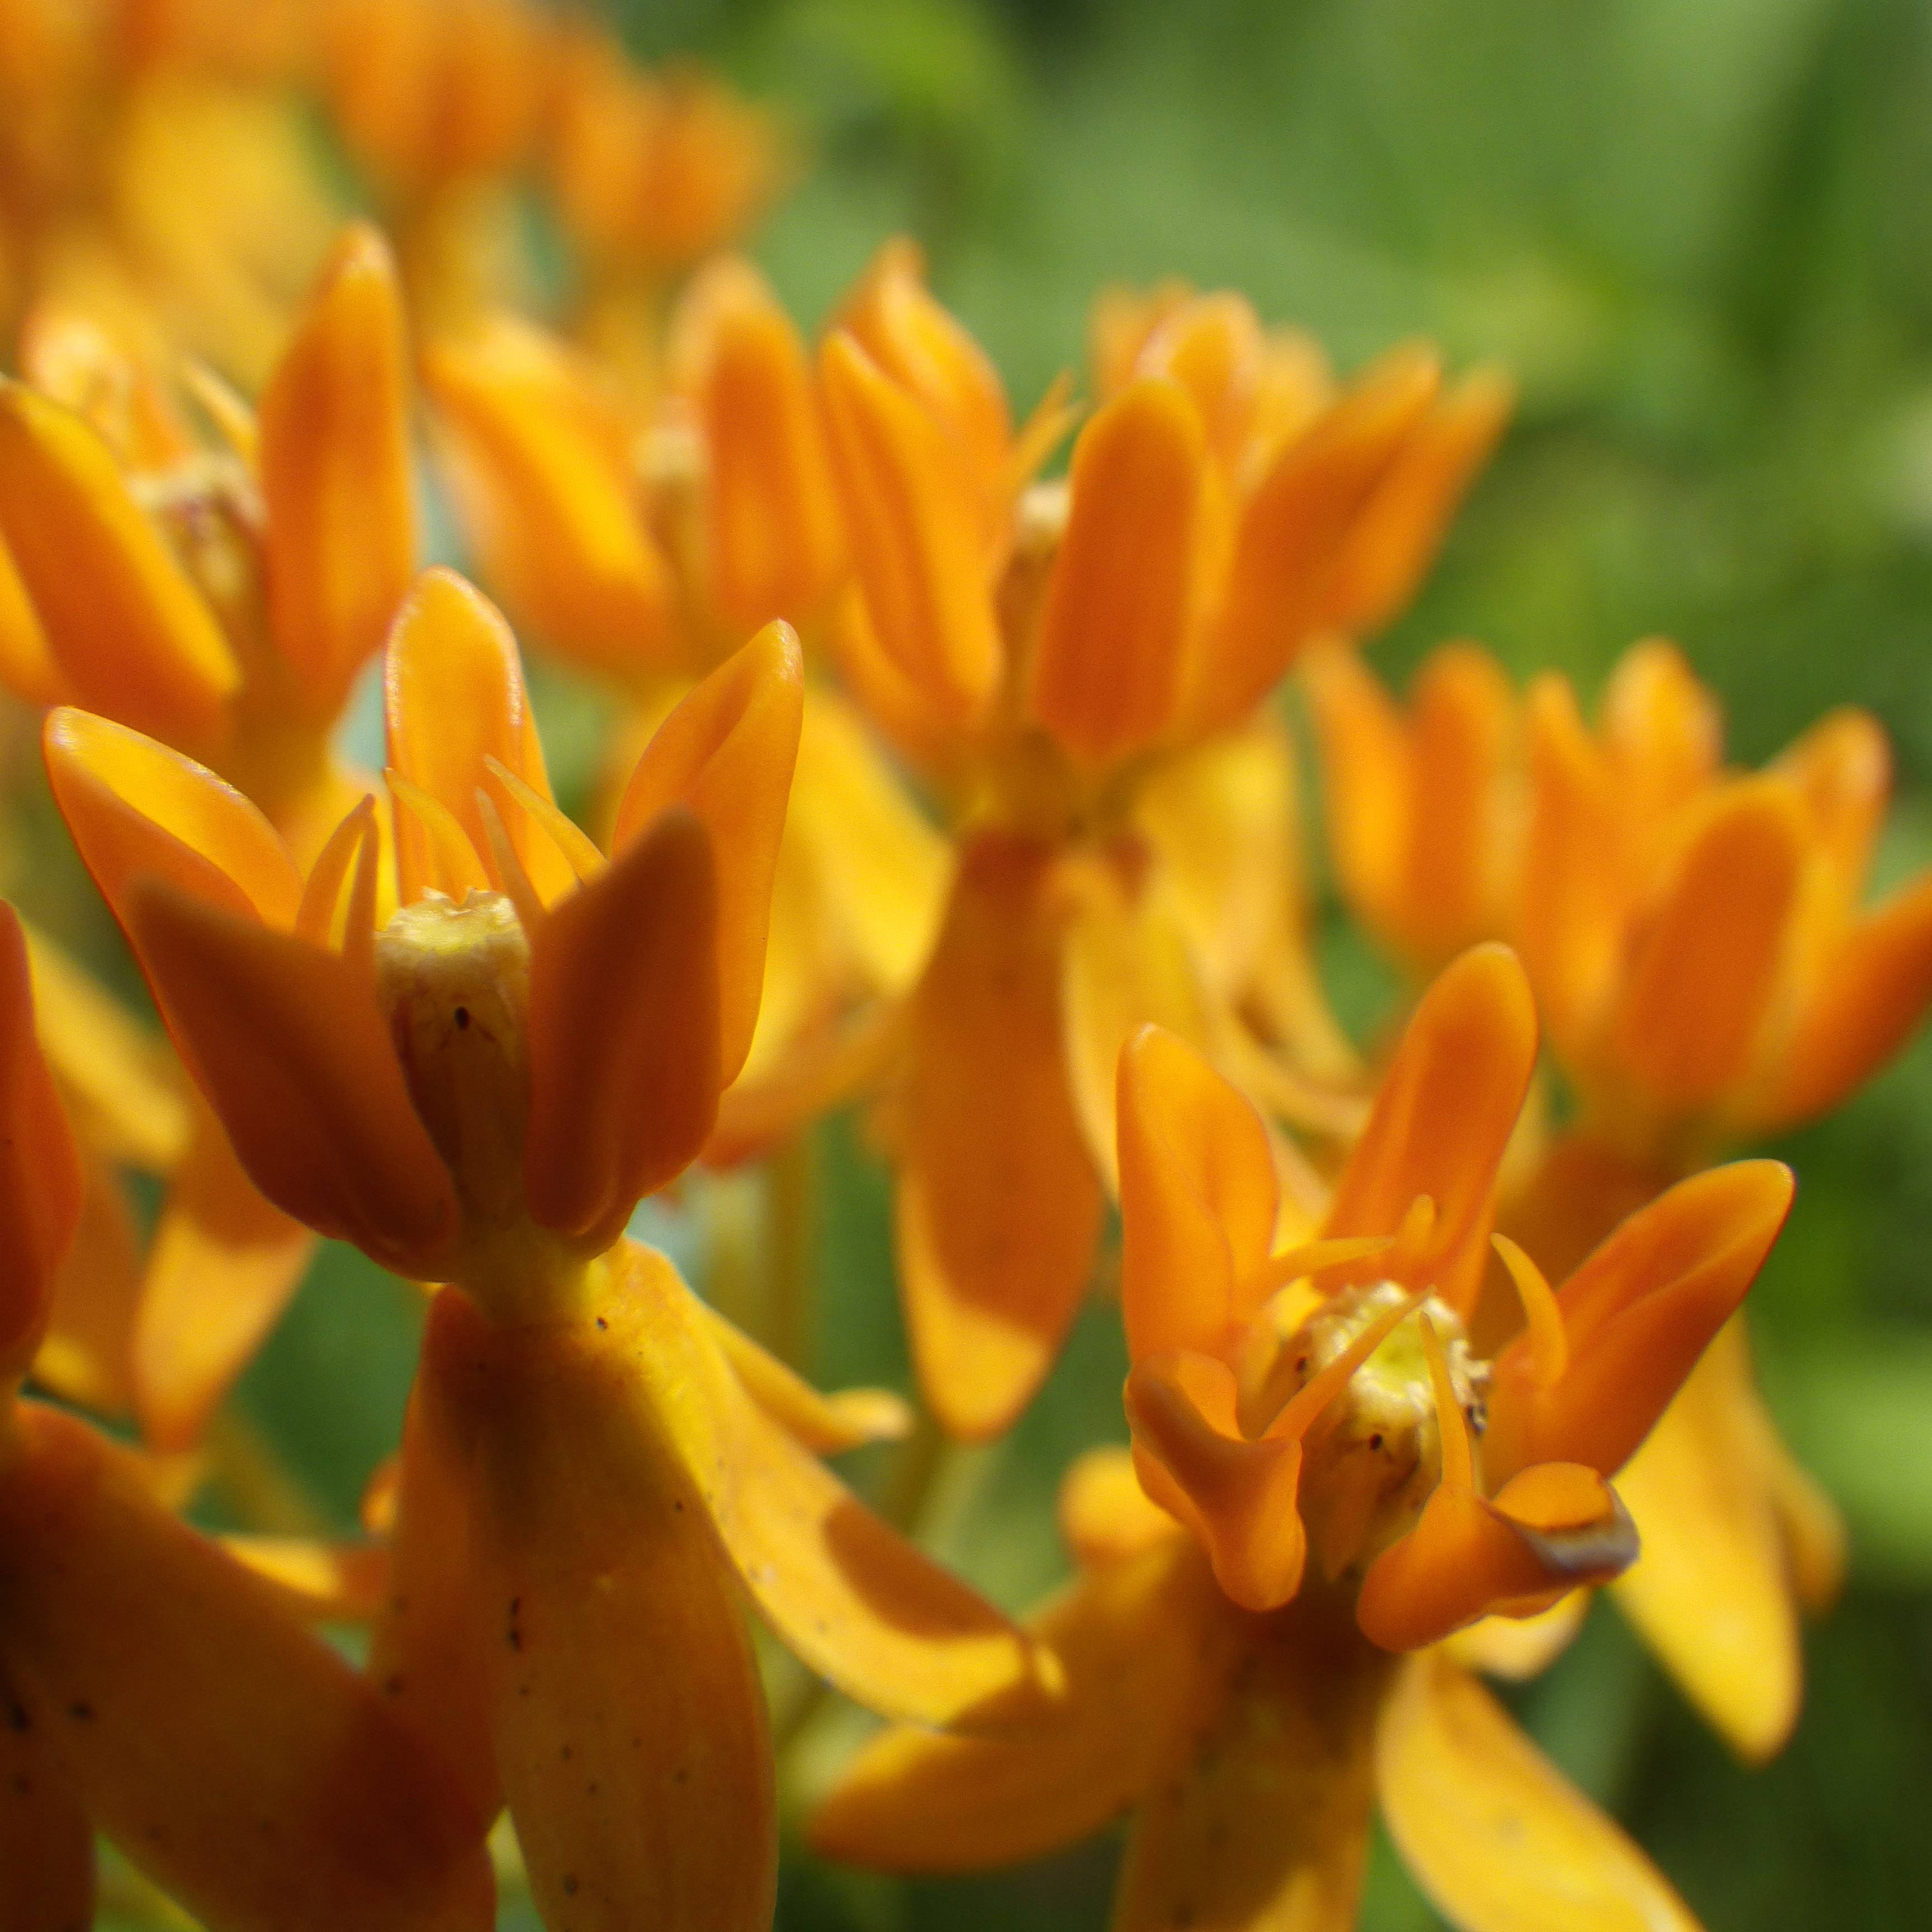 There are more than 70 species of milkweed in the United States. Here in Kane County, the bright orange butterfly weed (Asclepias tuberosa) grows in quality prairies. Common milkweed (A. syriaca) can be found along roadsides and fencerows, as well as in prairie habitat.